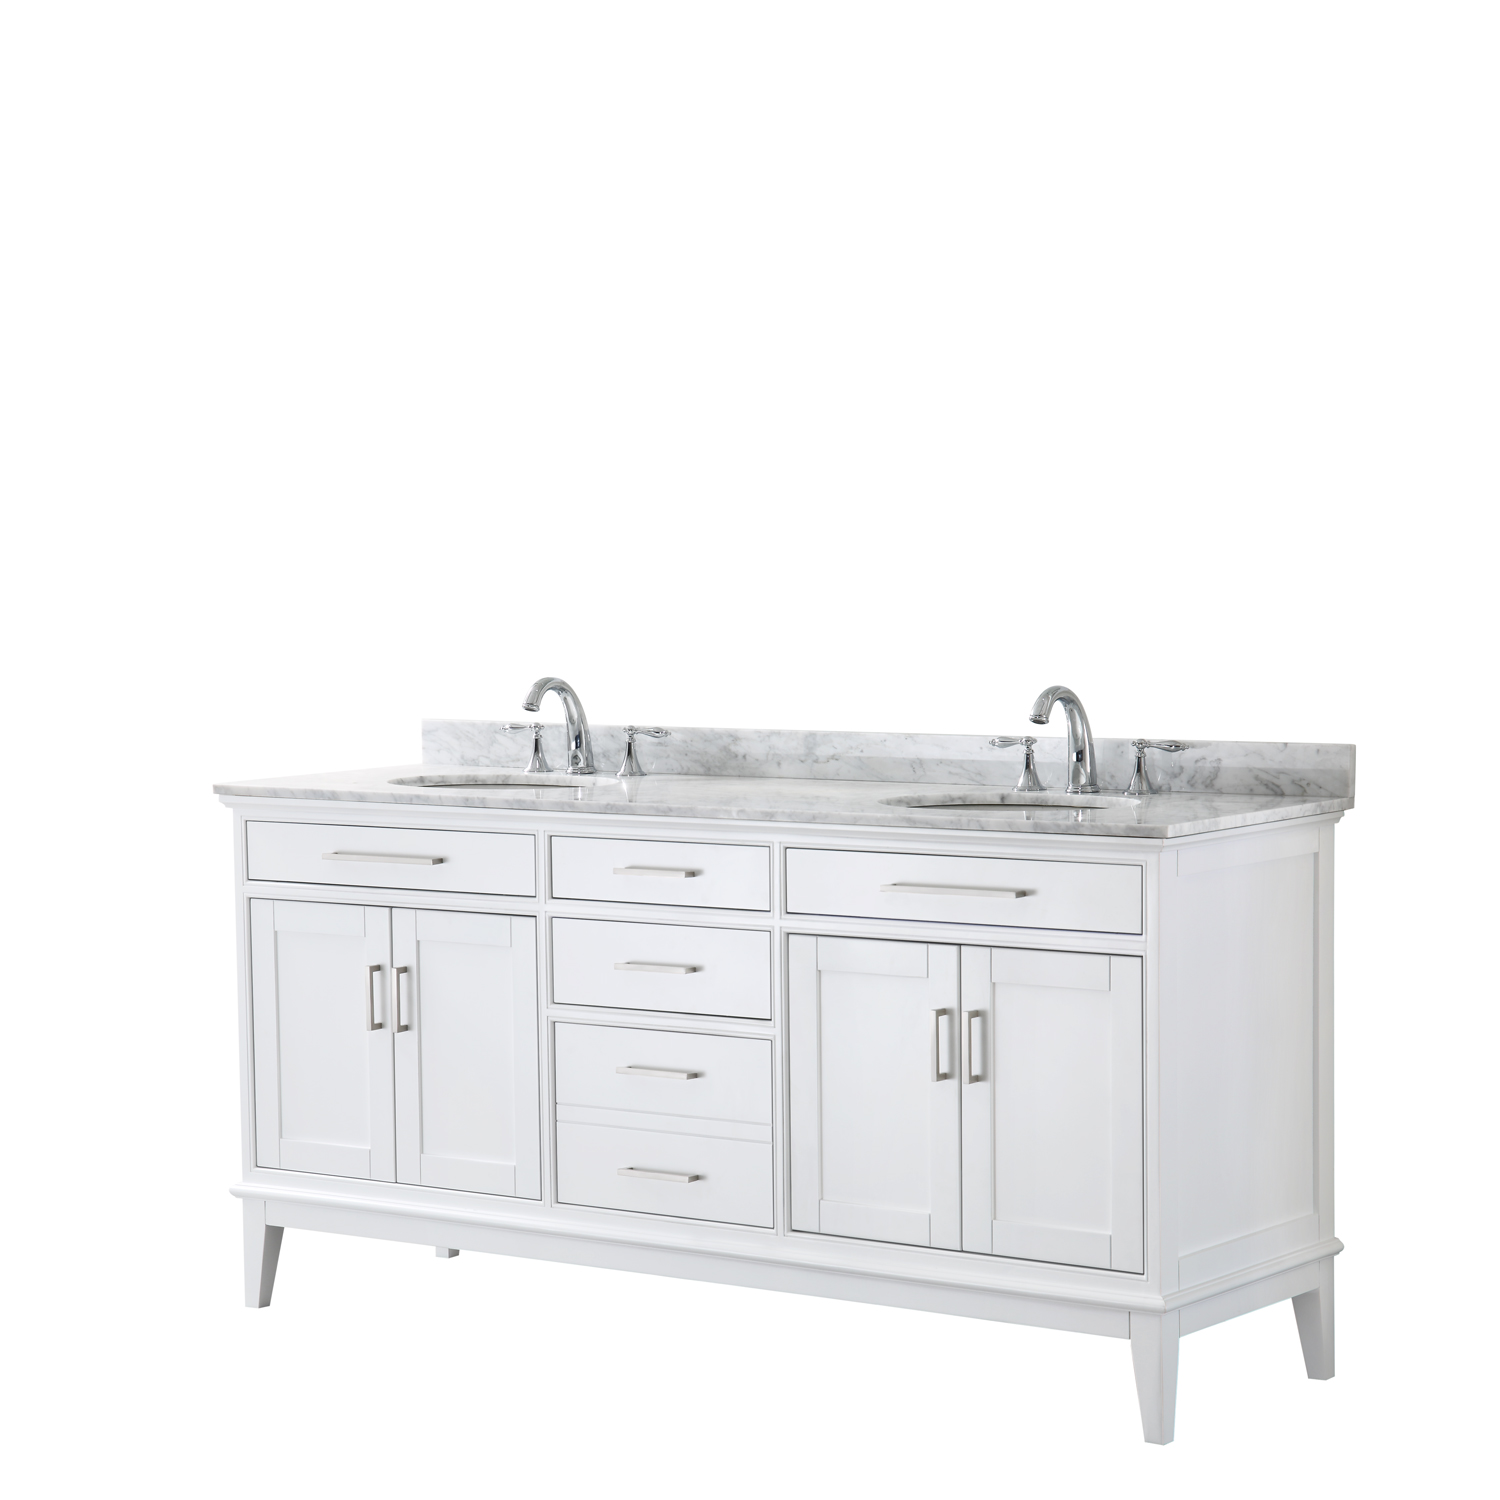 "Contemporary 72"" Double Bathroom Vanity in White, White Carrara Marble Countertop with Undermount Sinks, and Mirror Options"